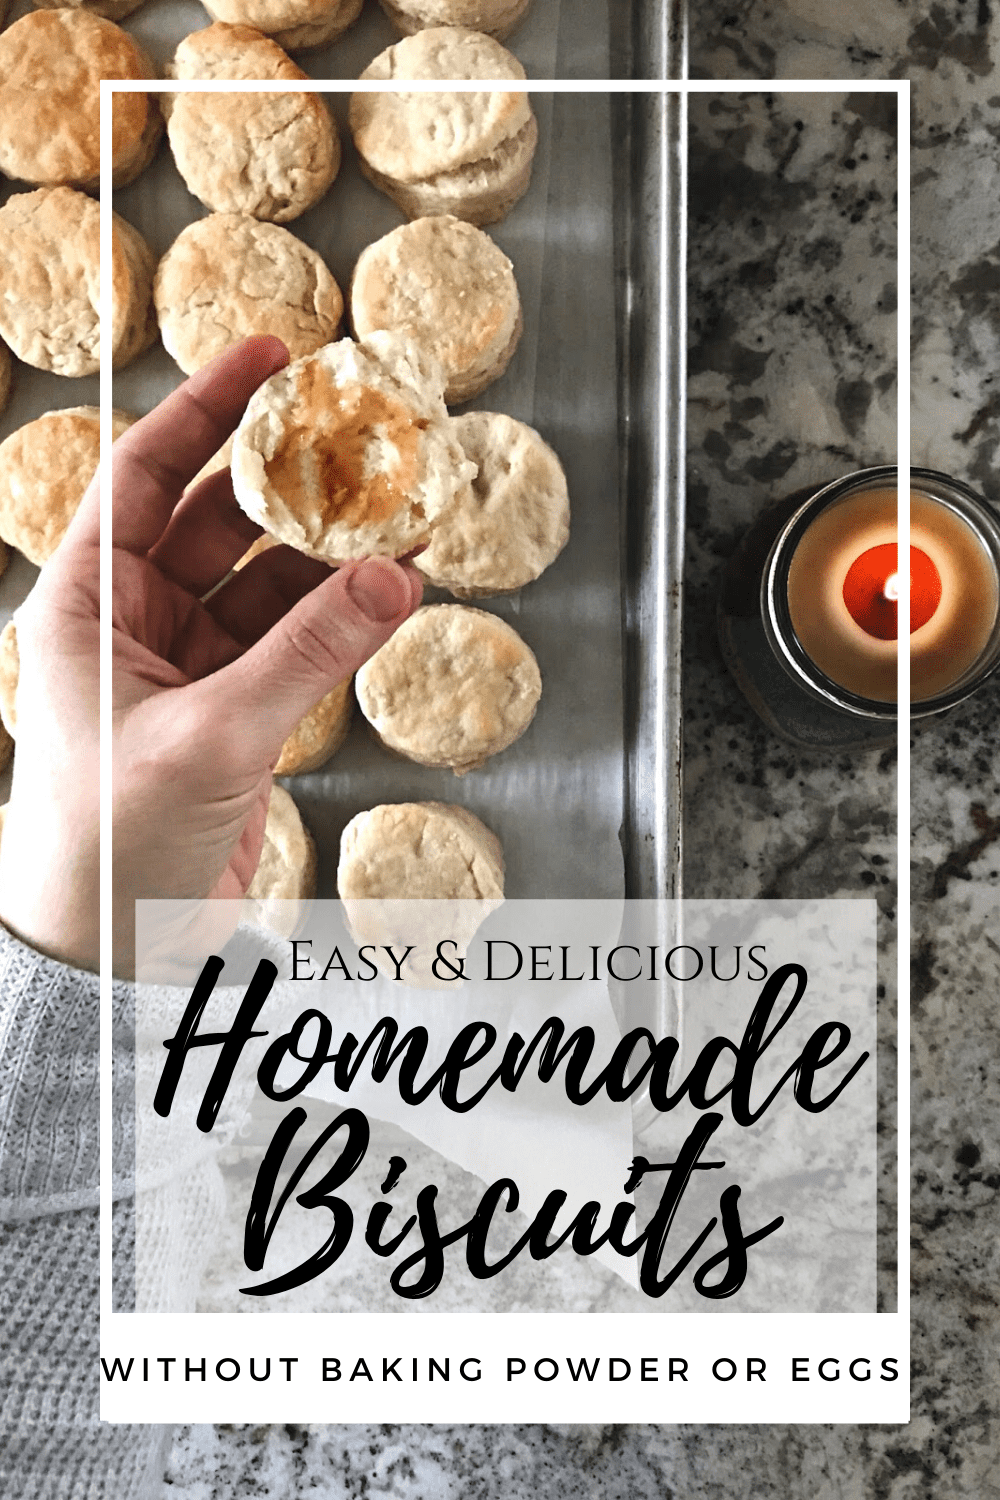 eggless biscuits homemade